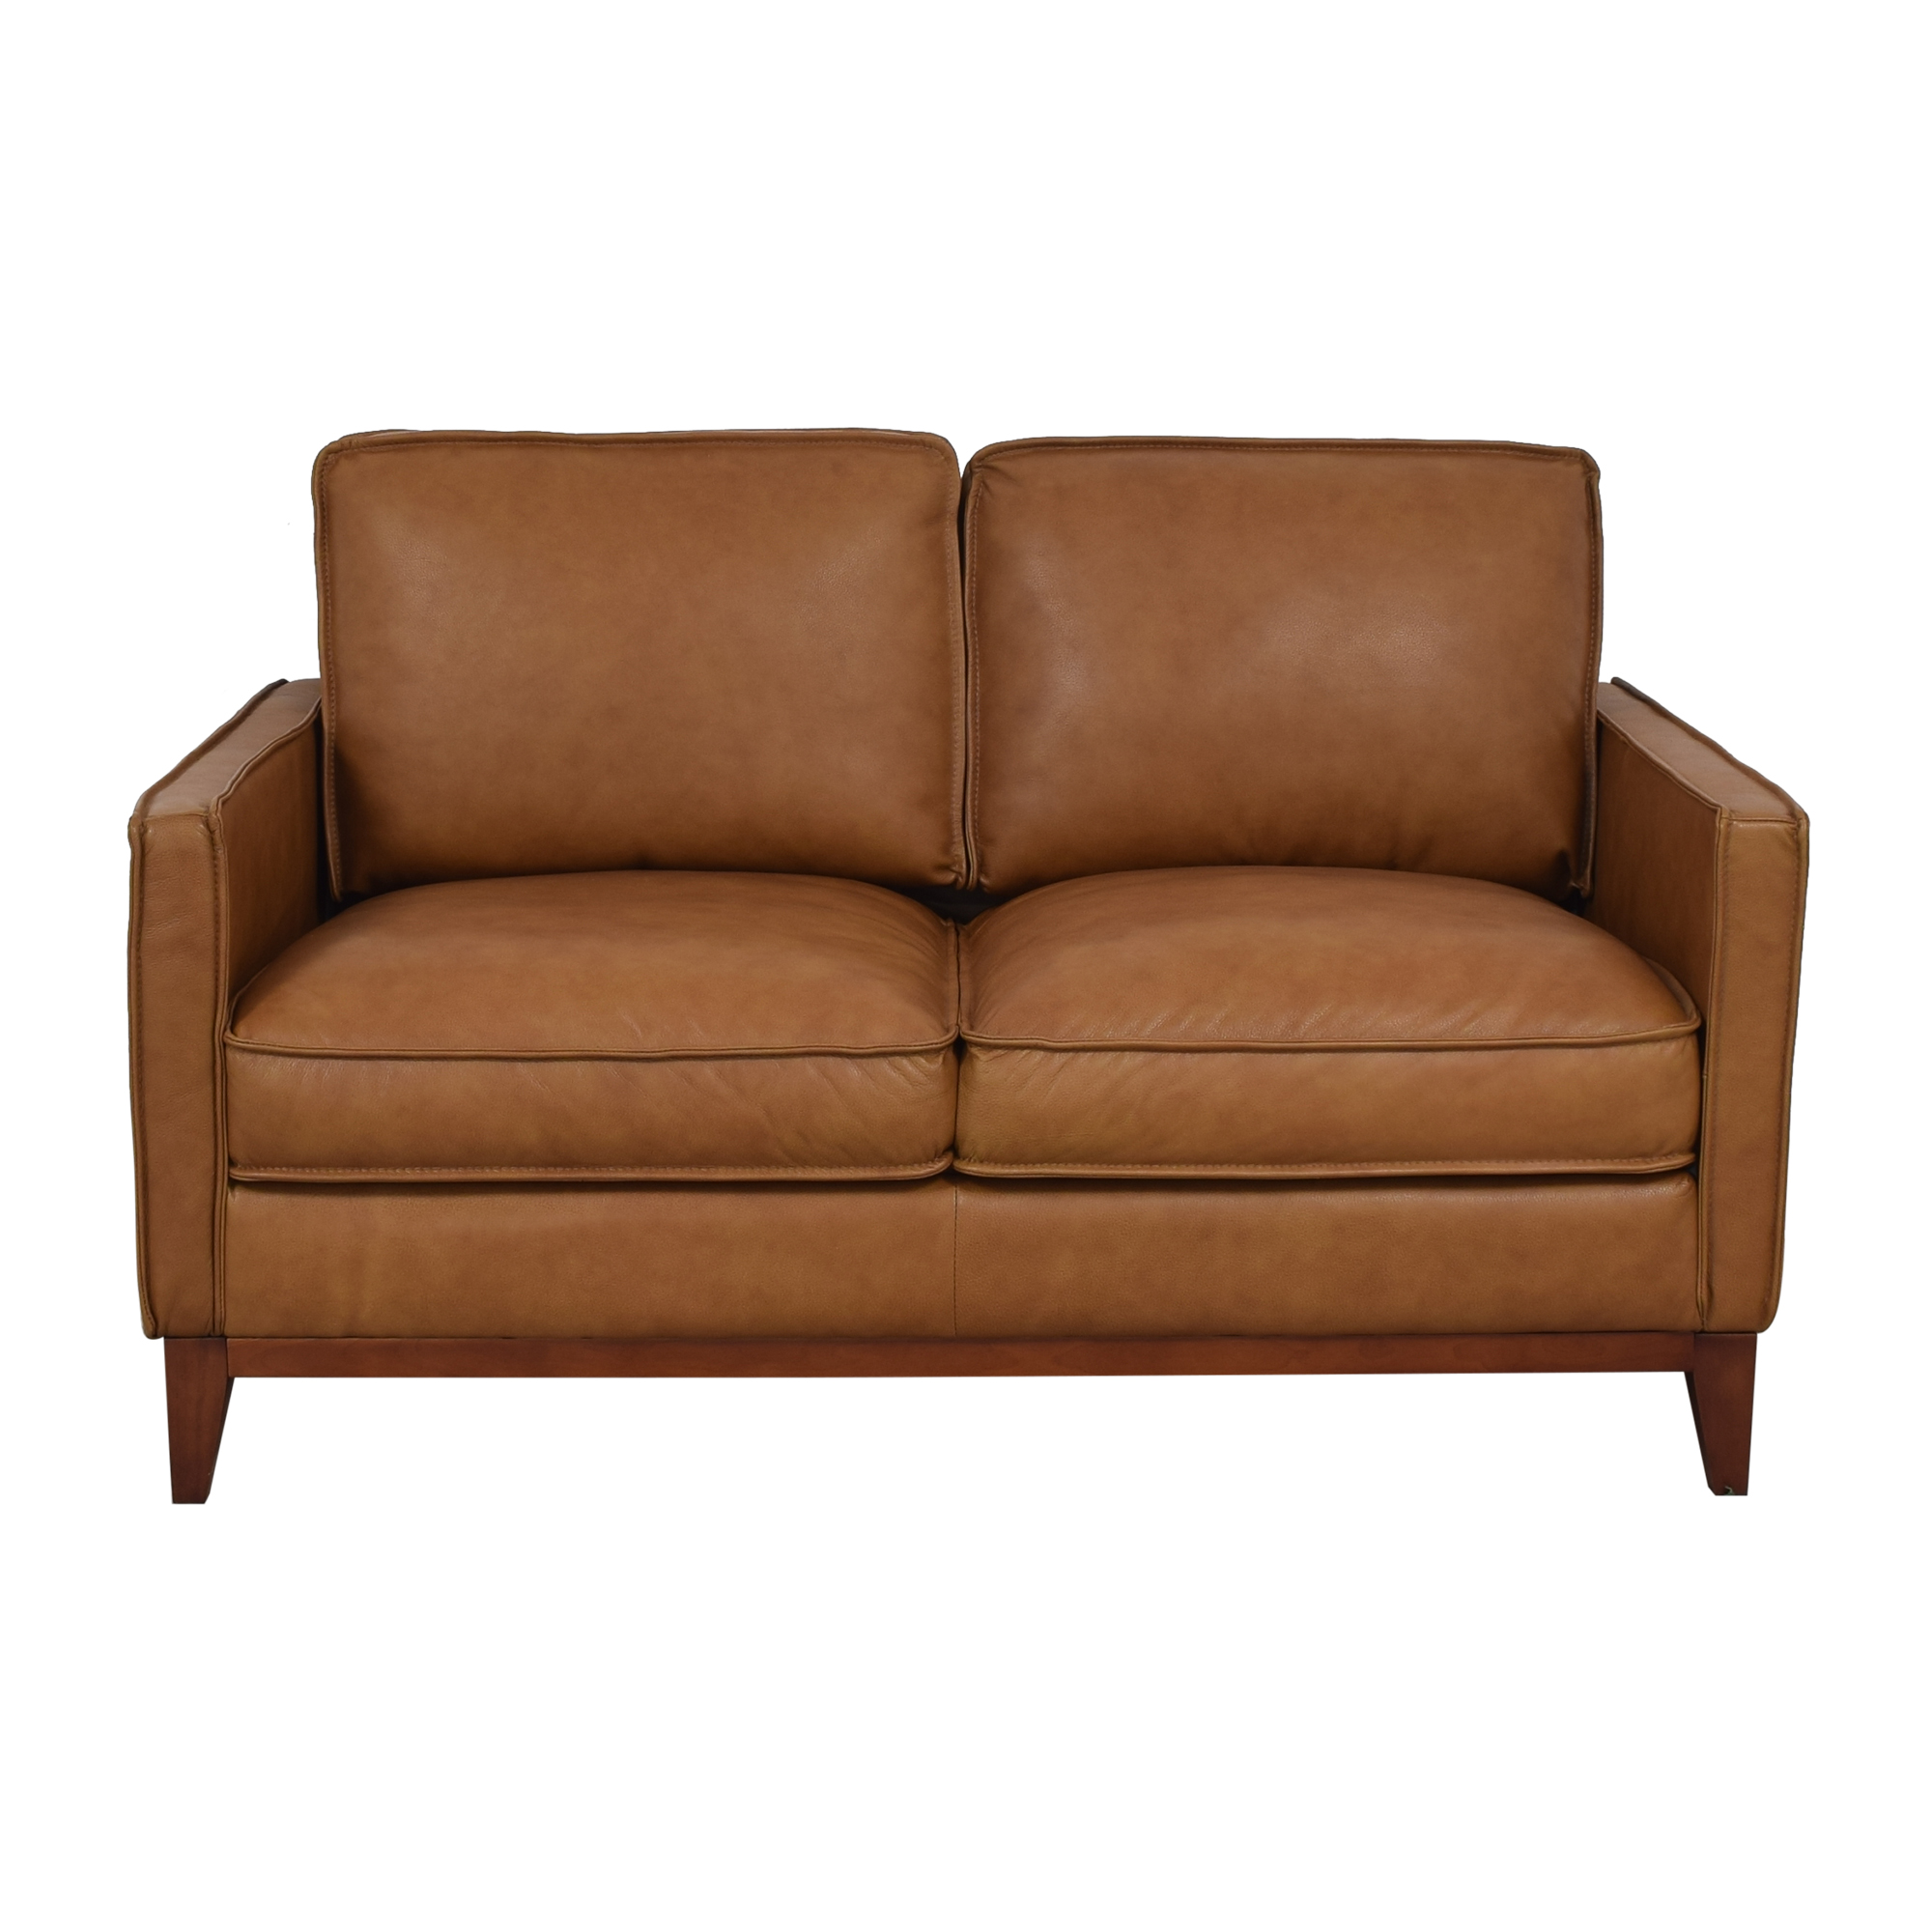 Leather Italia Leather Italia Newport Loveseat price